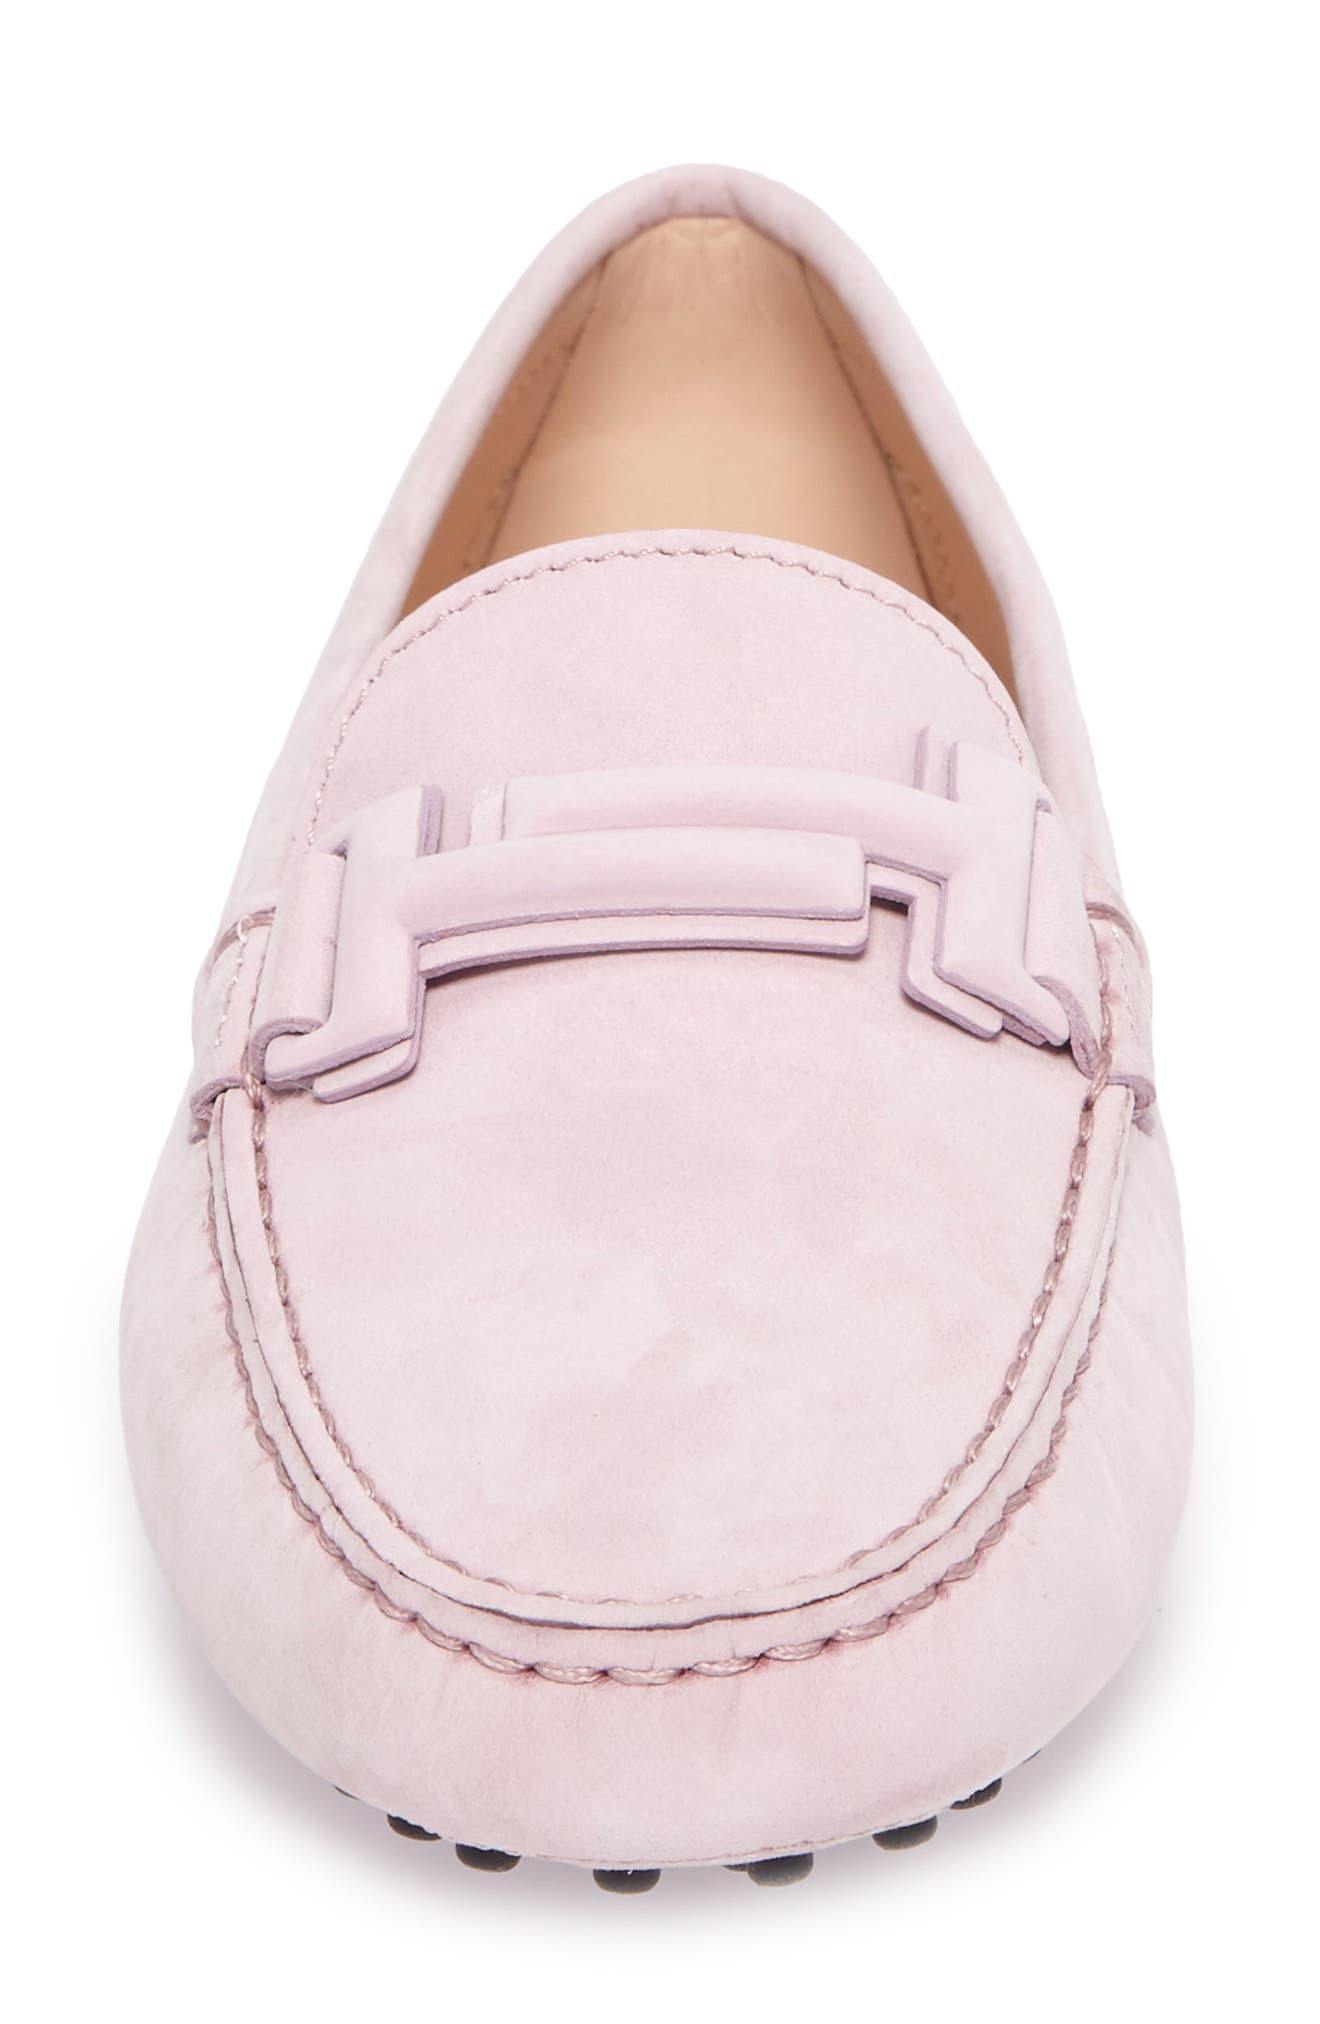 Gommini Covered Double T Loafer,                             Alternate thumbnail 11, color,